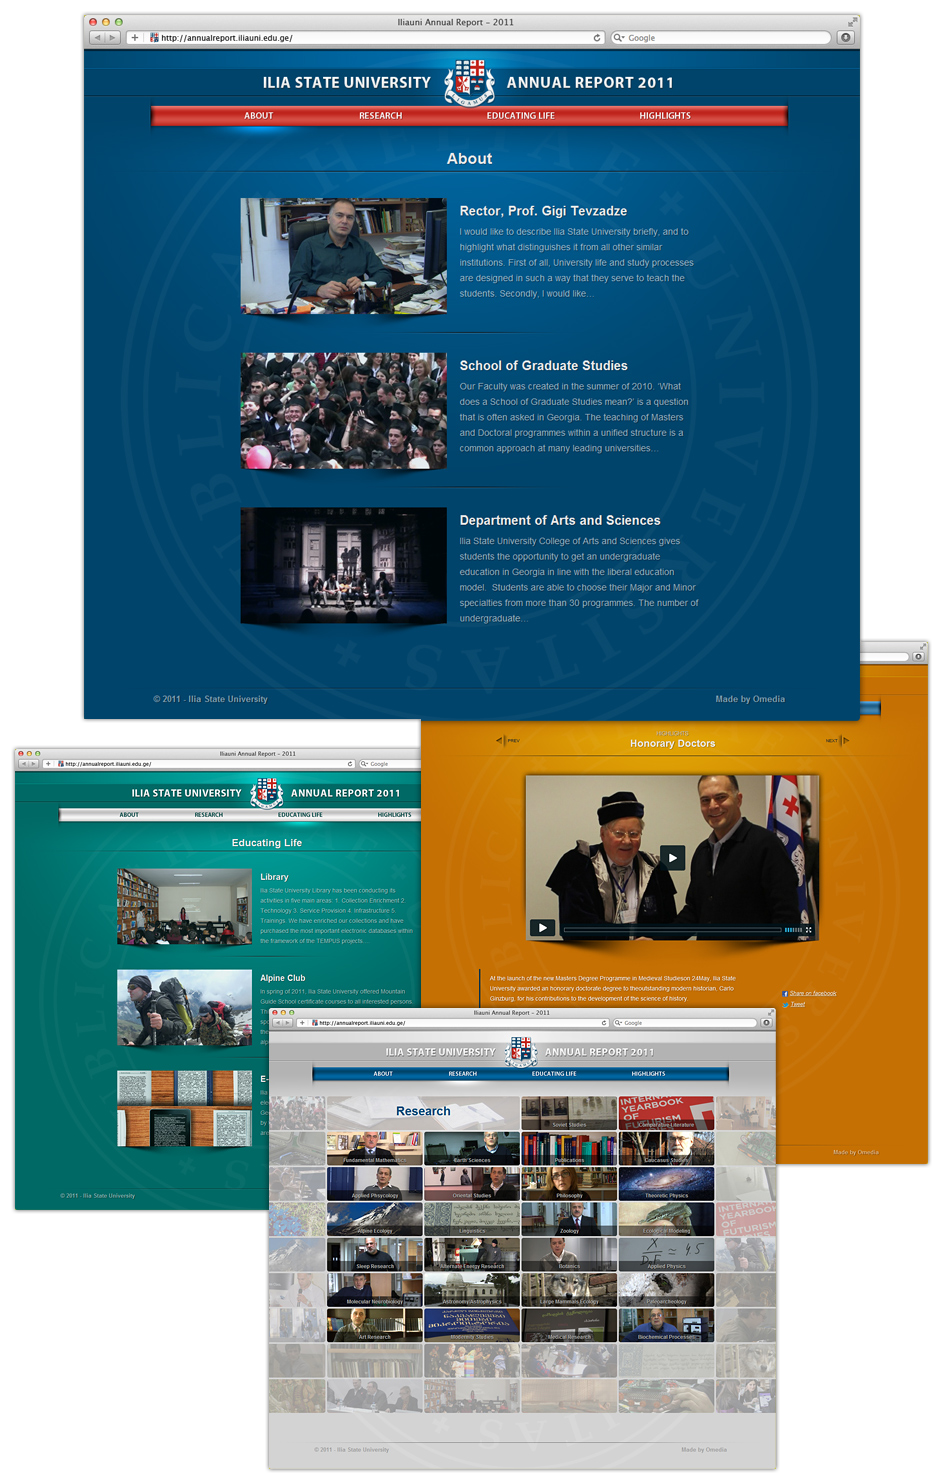 Ilia State University annual report